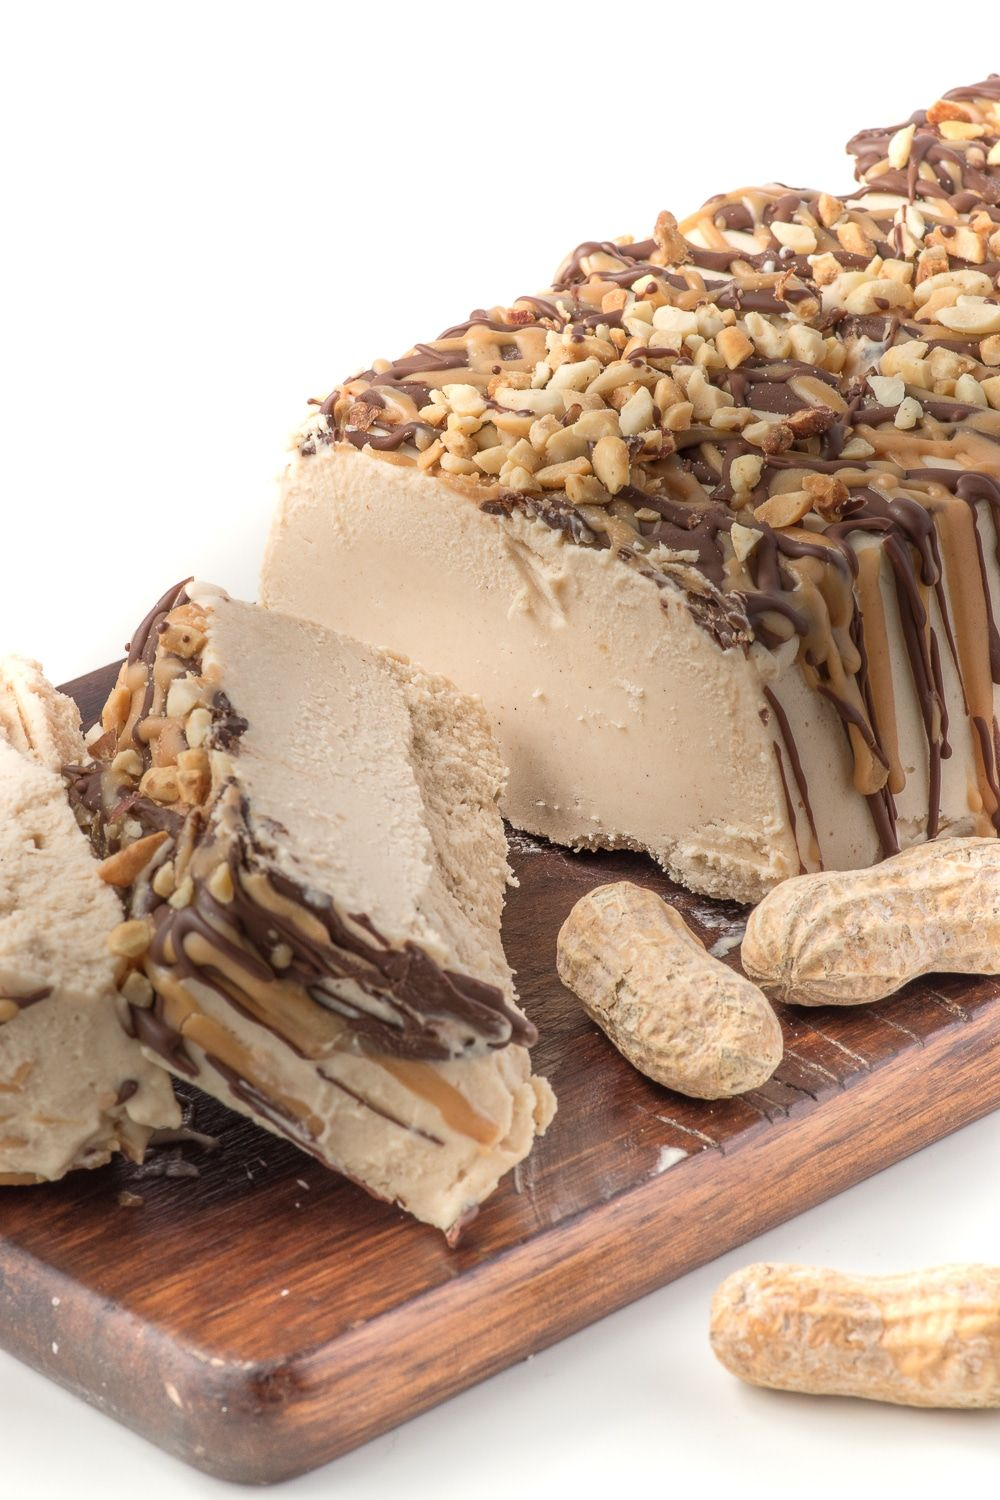 A homemade peanut butter ice cream cake topped with